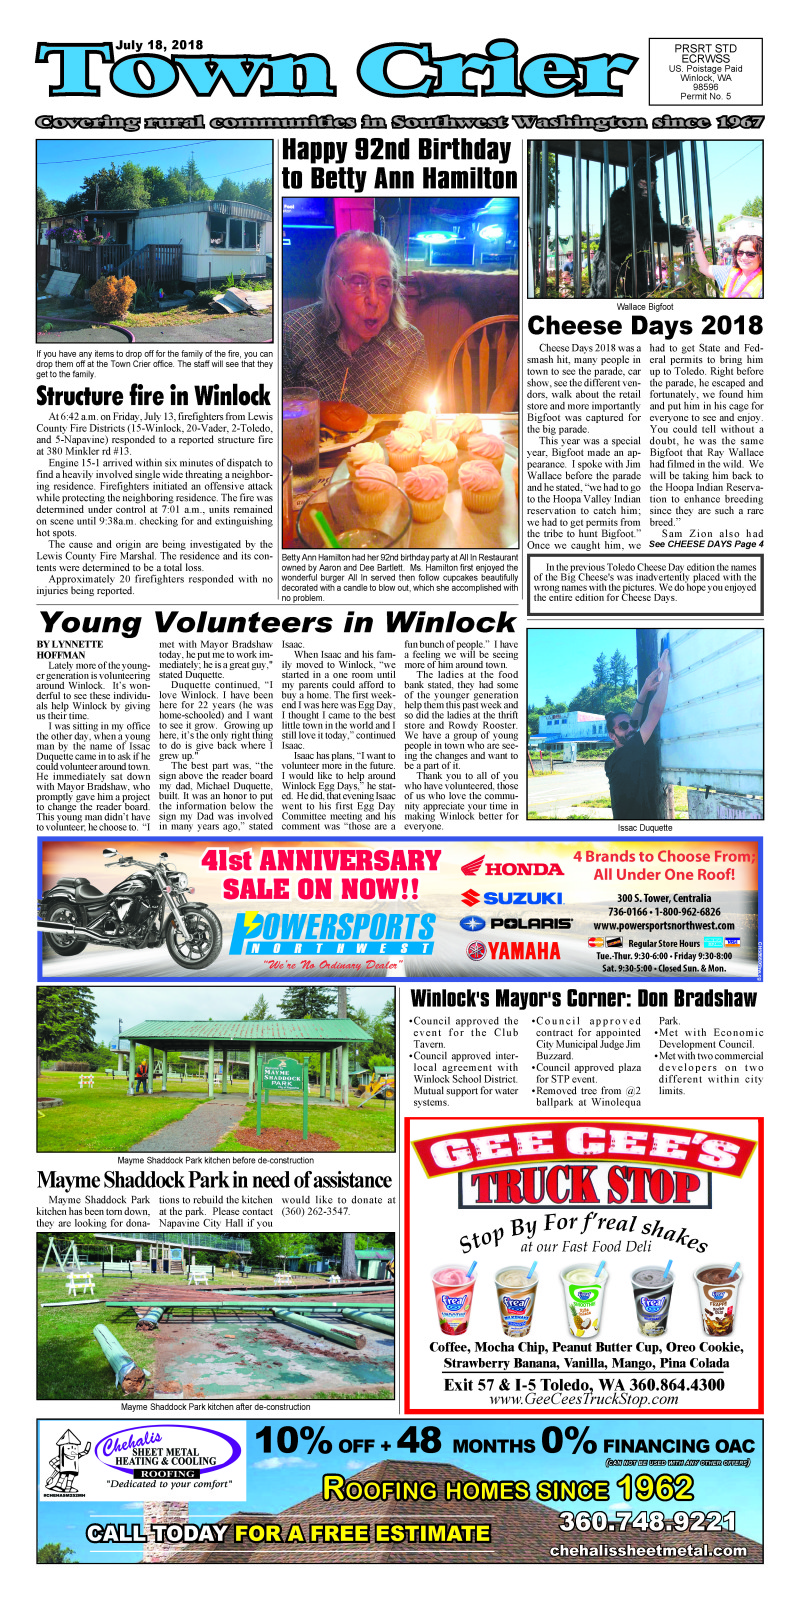 July 18, 2018 Town Crier